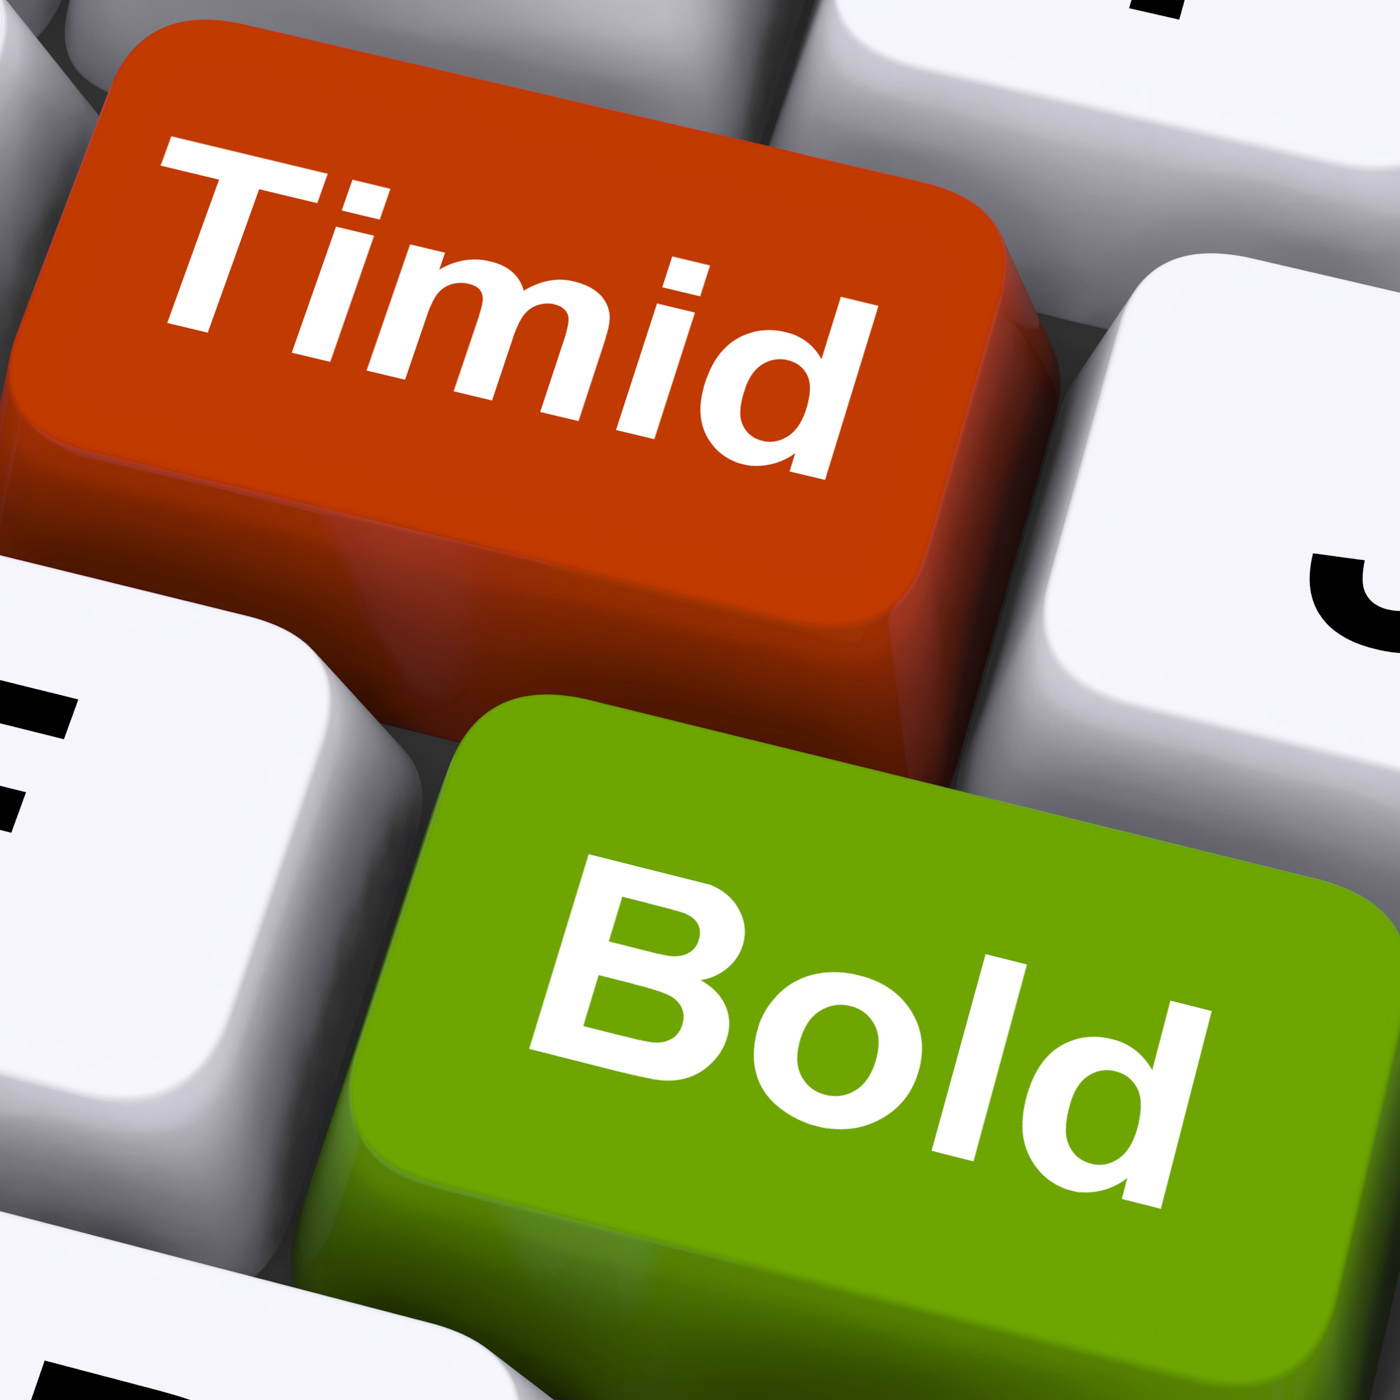 Timid bold keys show shy or outspoken photo